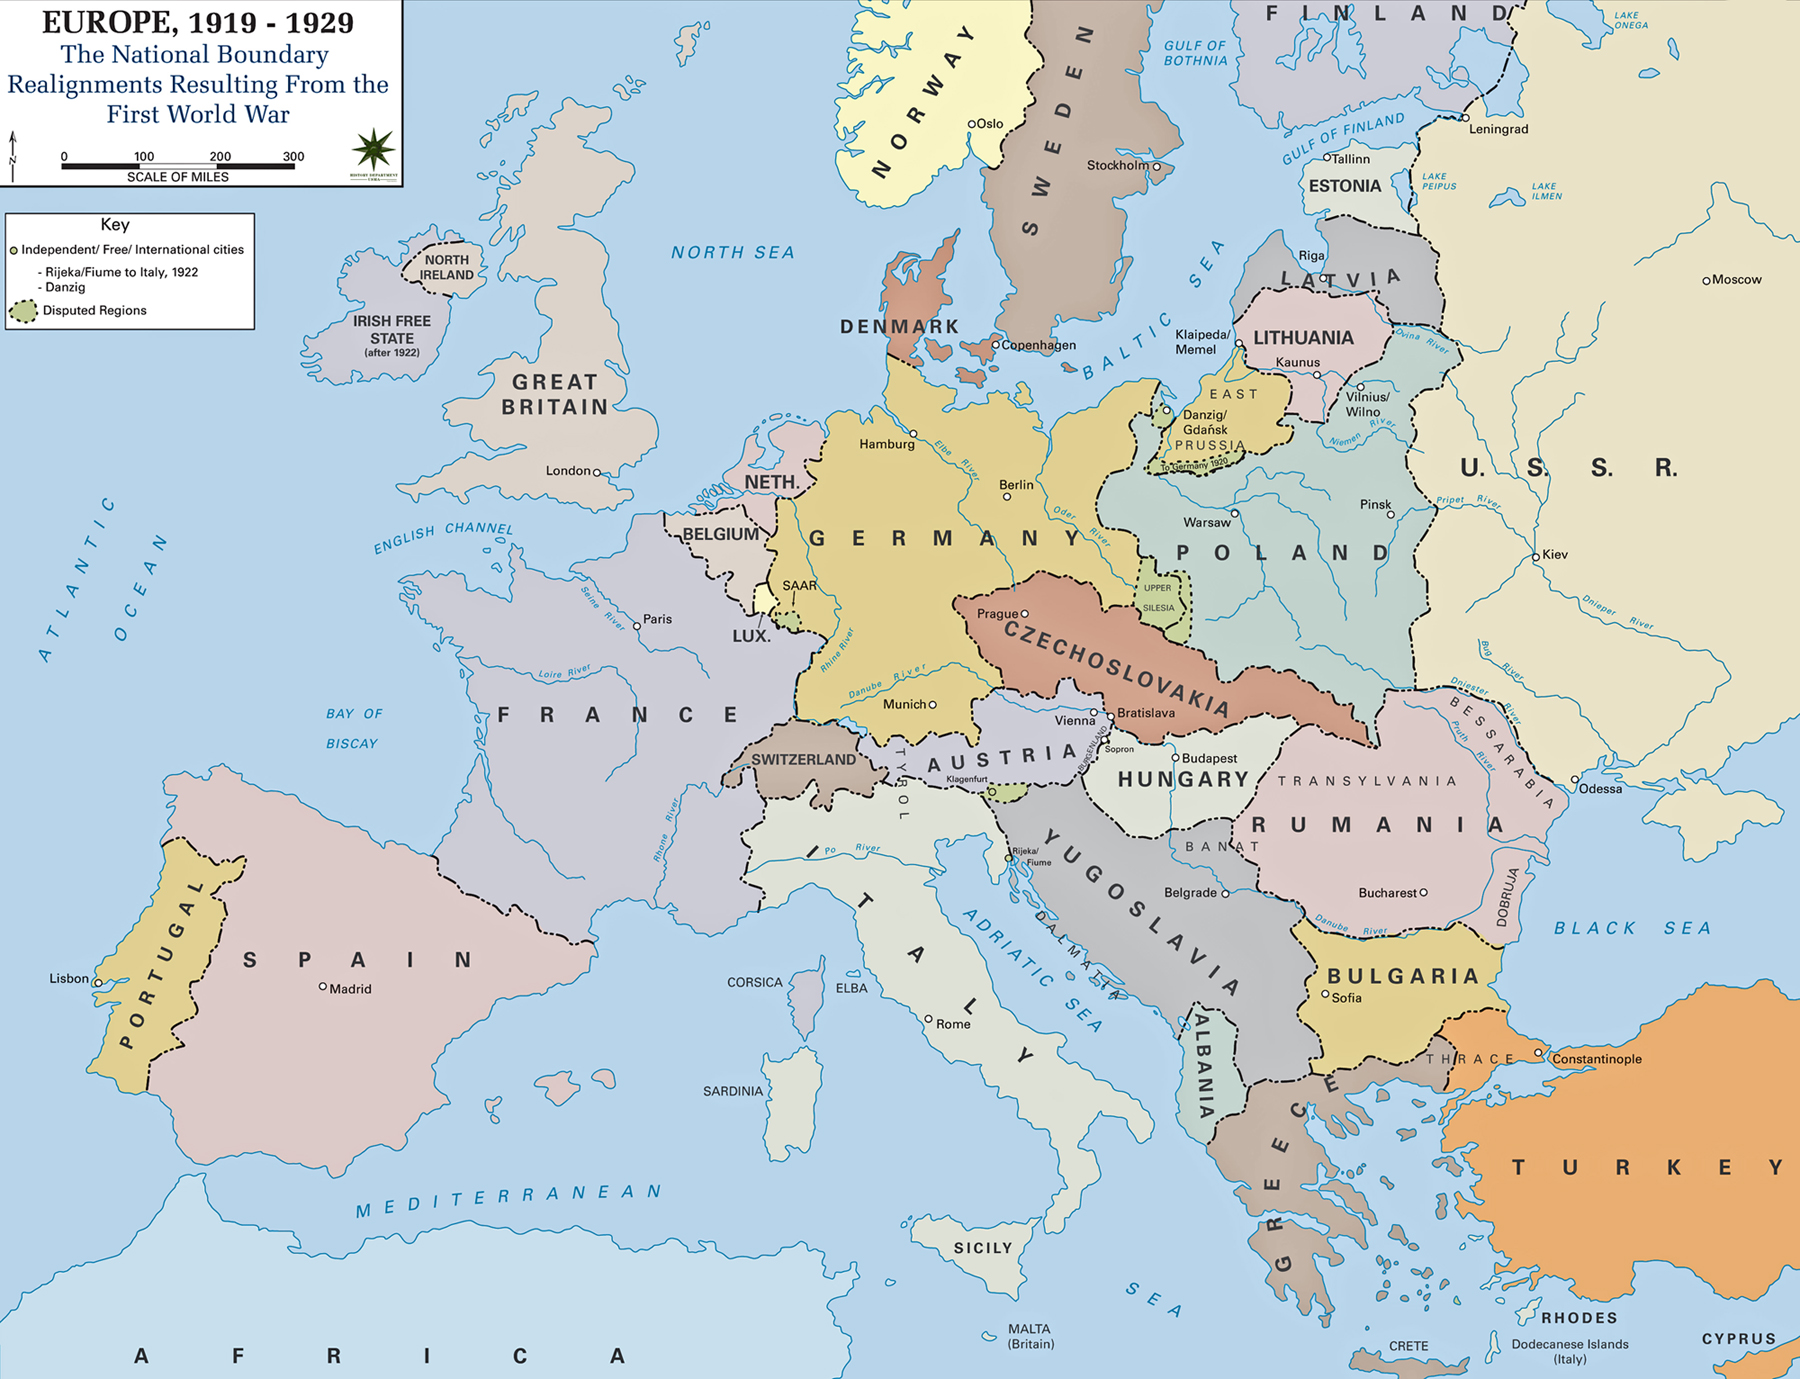 Map of europe in 1919 map of europe 1919 1929 gumiabroncs